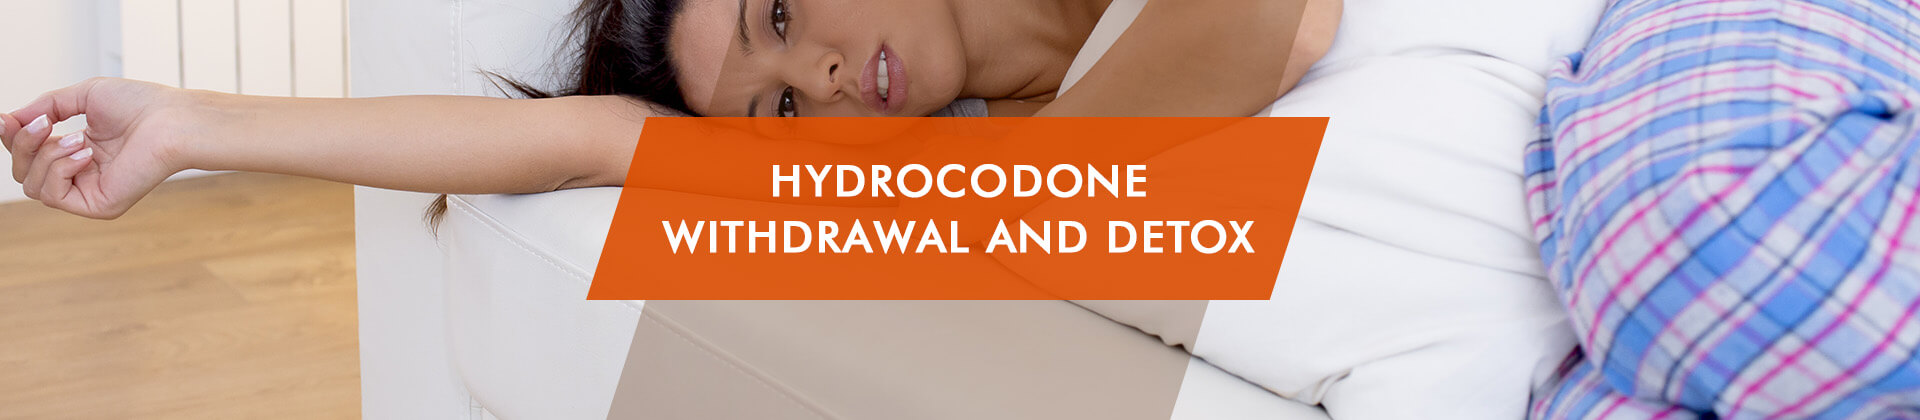 Hydrocodone Withdrawal and Detox